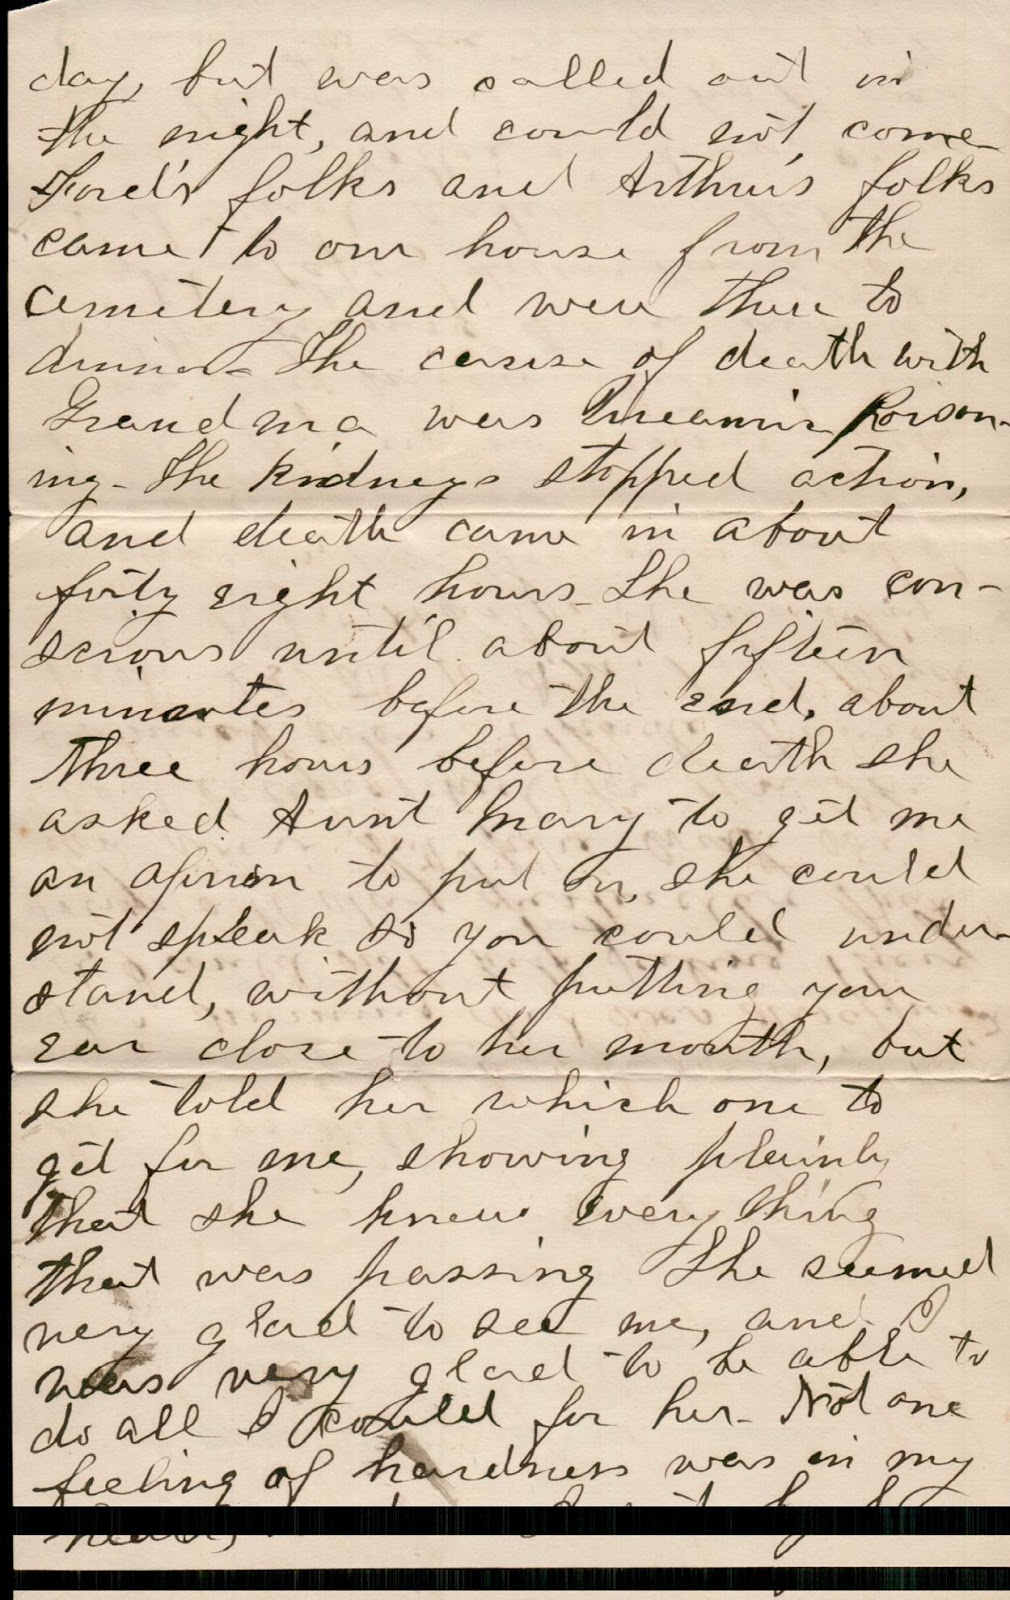 Photo of Letter from Anna Neff to C.W. Neff